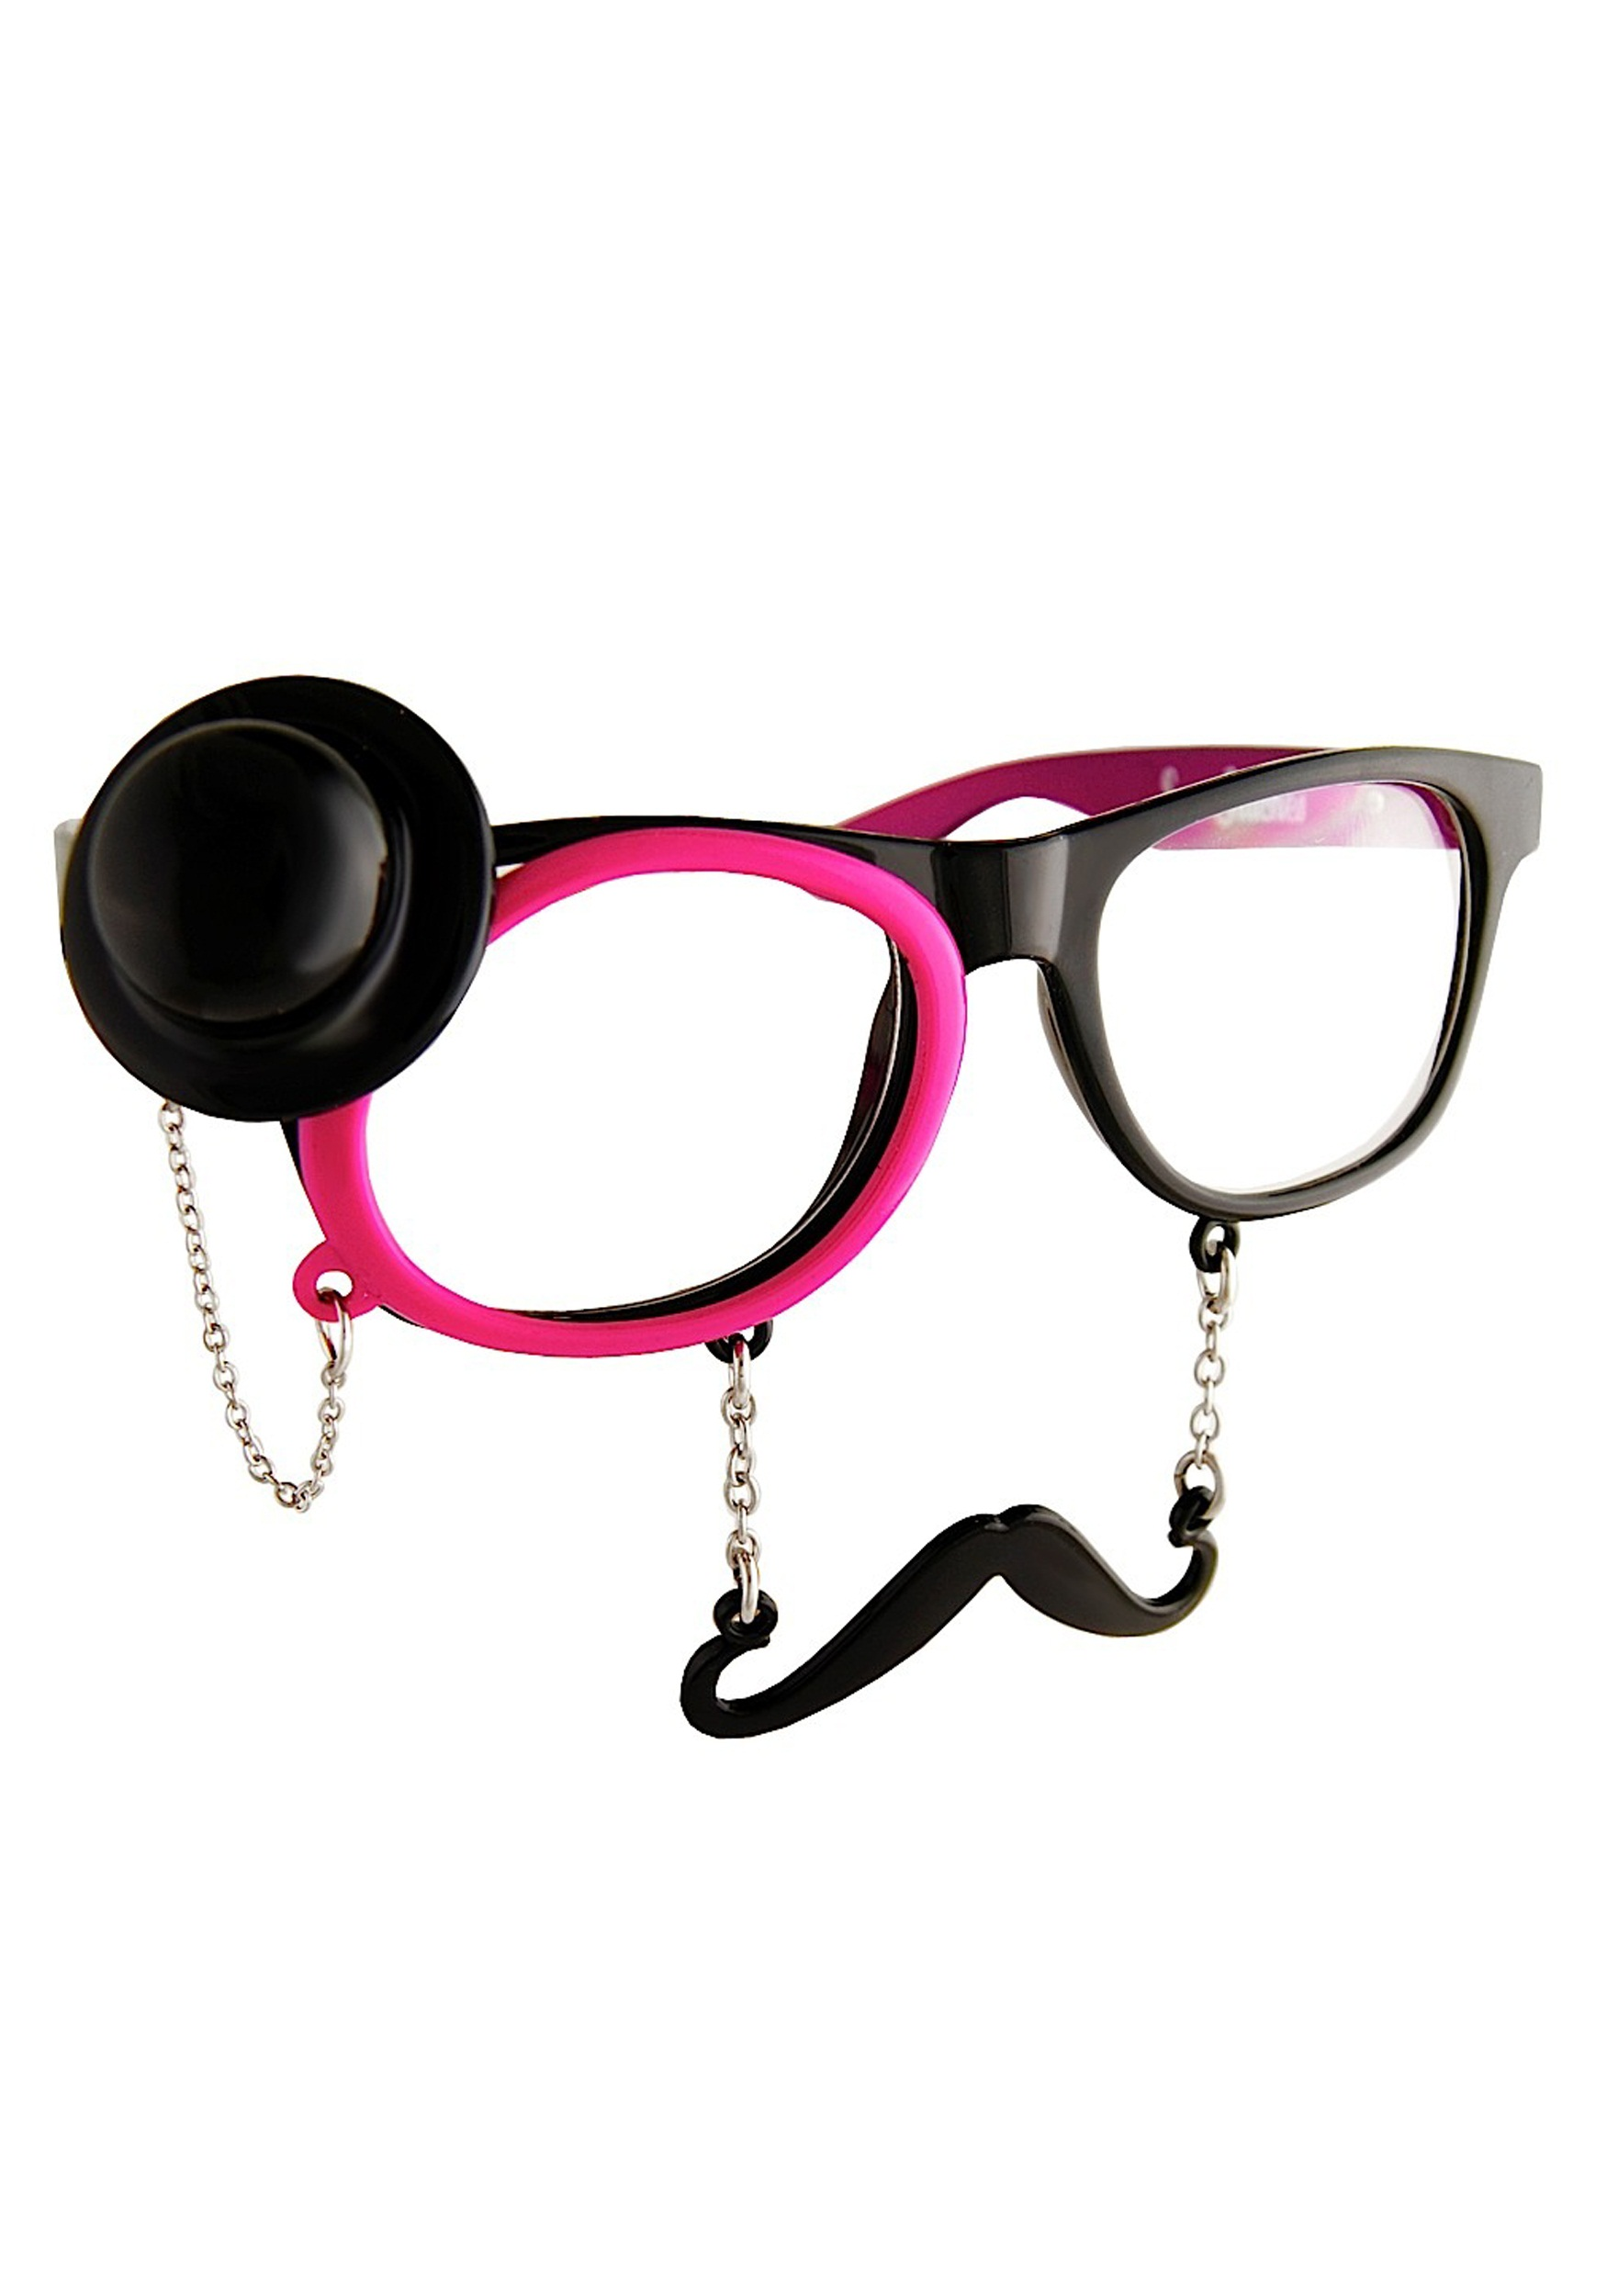 Western Sunglasses with Monocle